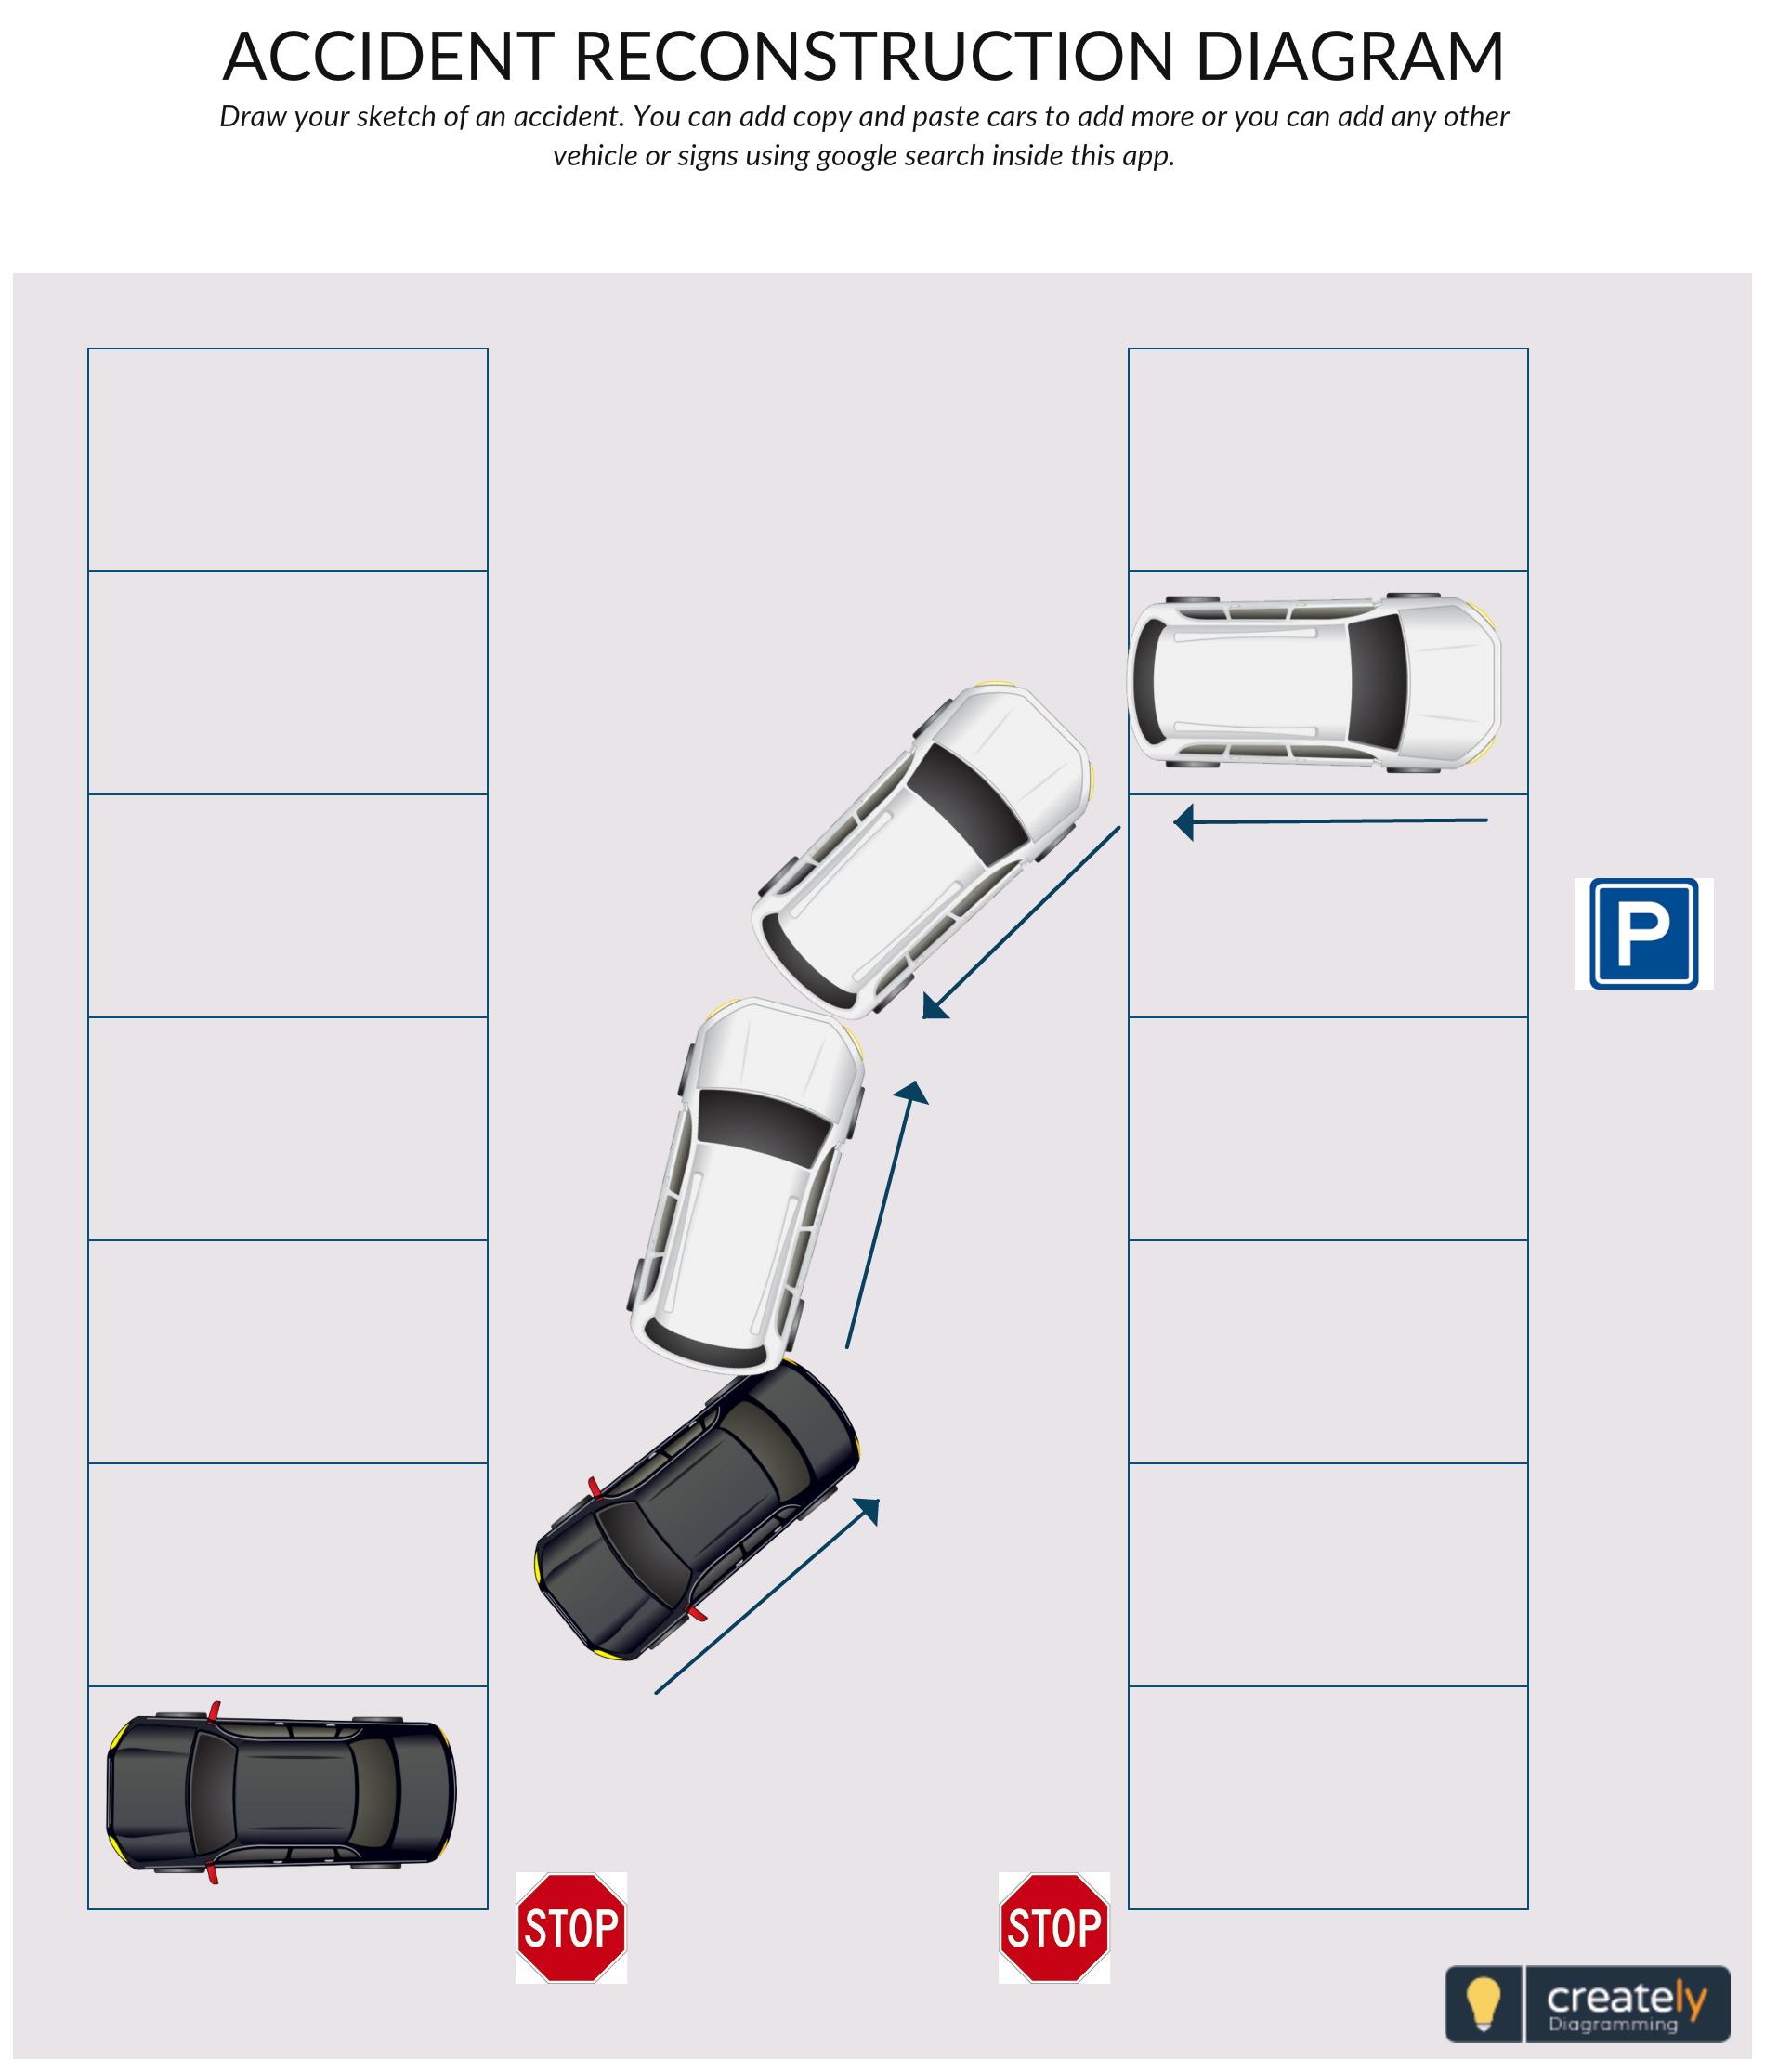 hight resolution of accident reconstruction diagram helps you sketch the sequence of events that lead to the accident and